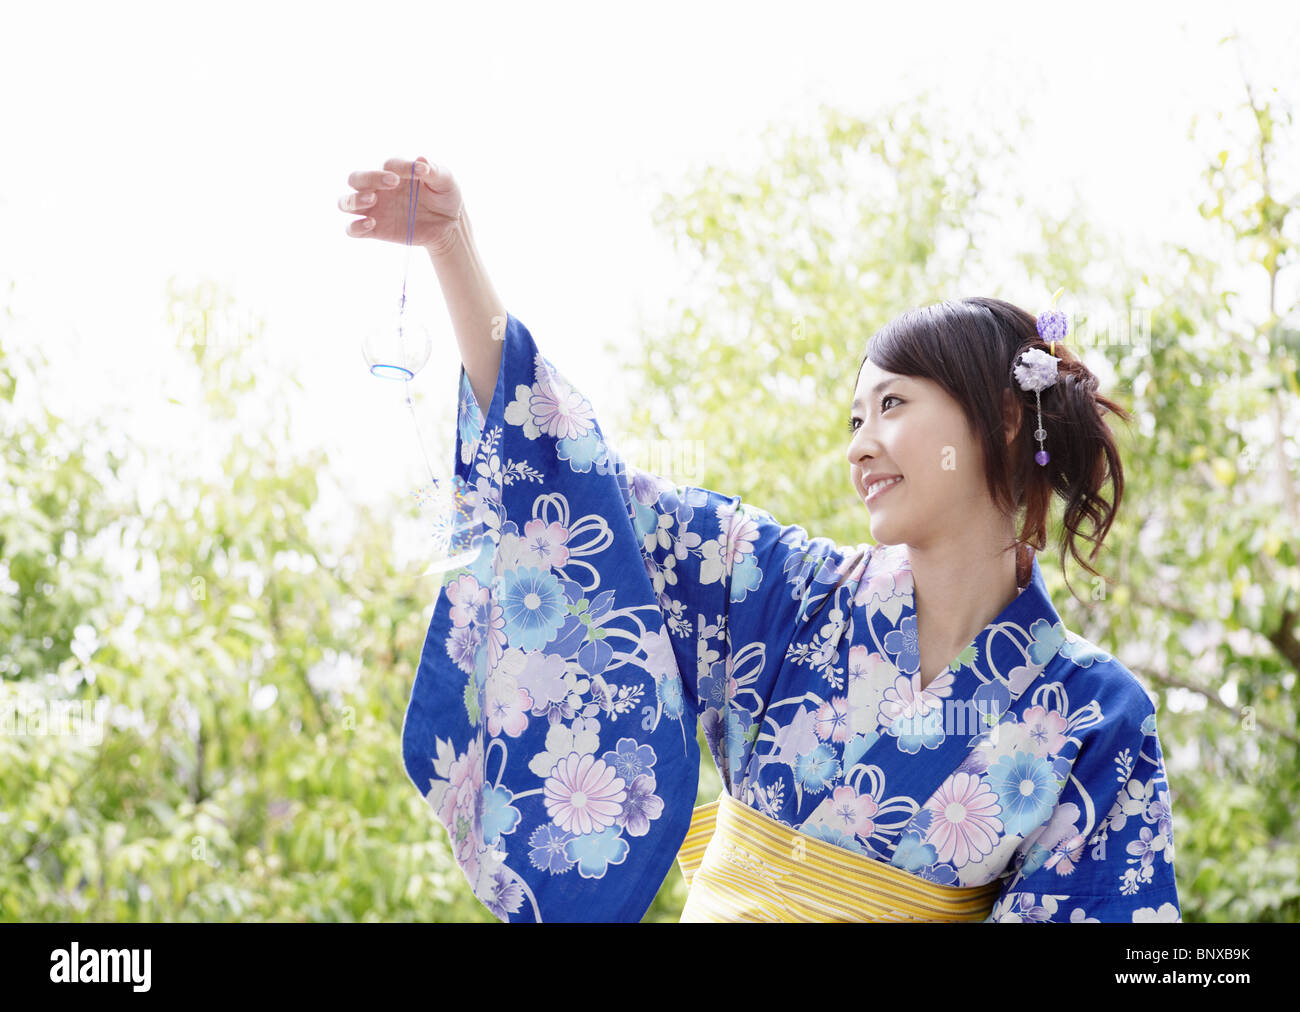 Young woman looking at wind chime - Stock Image